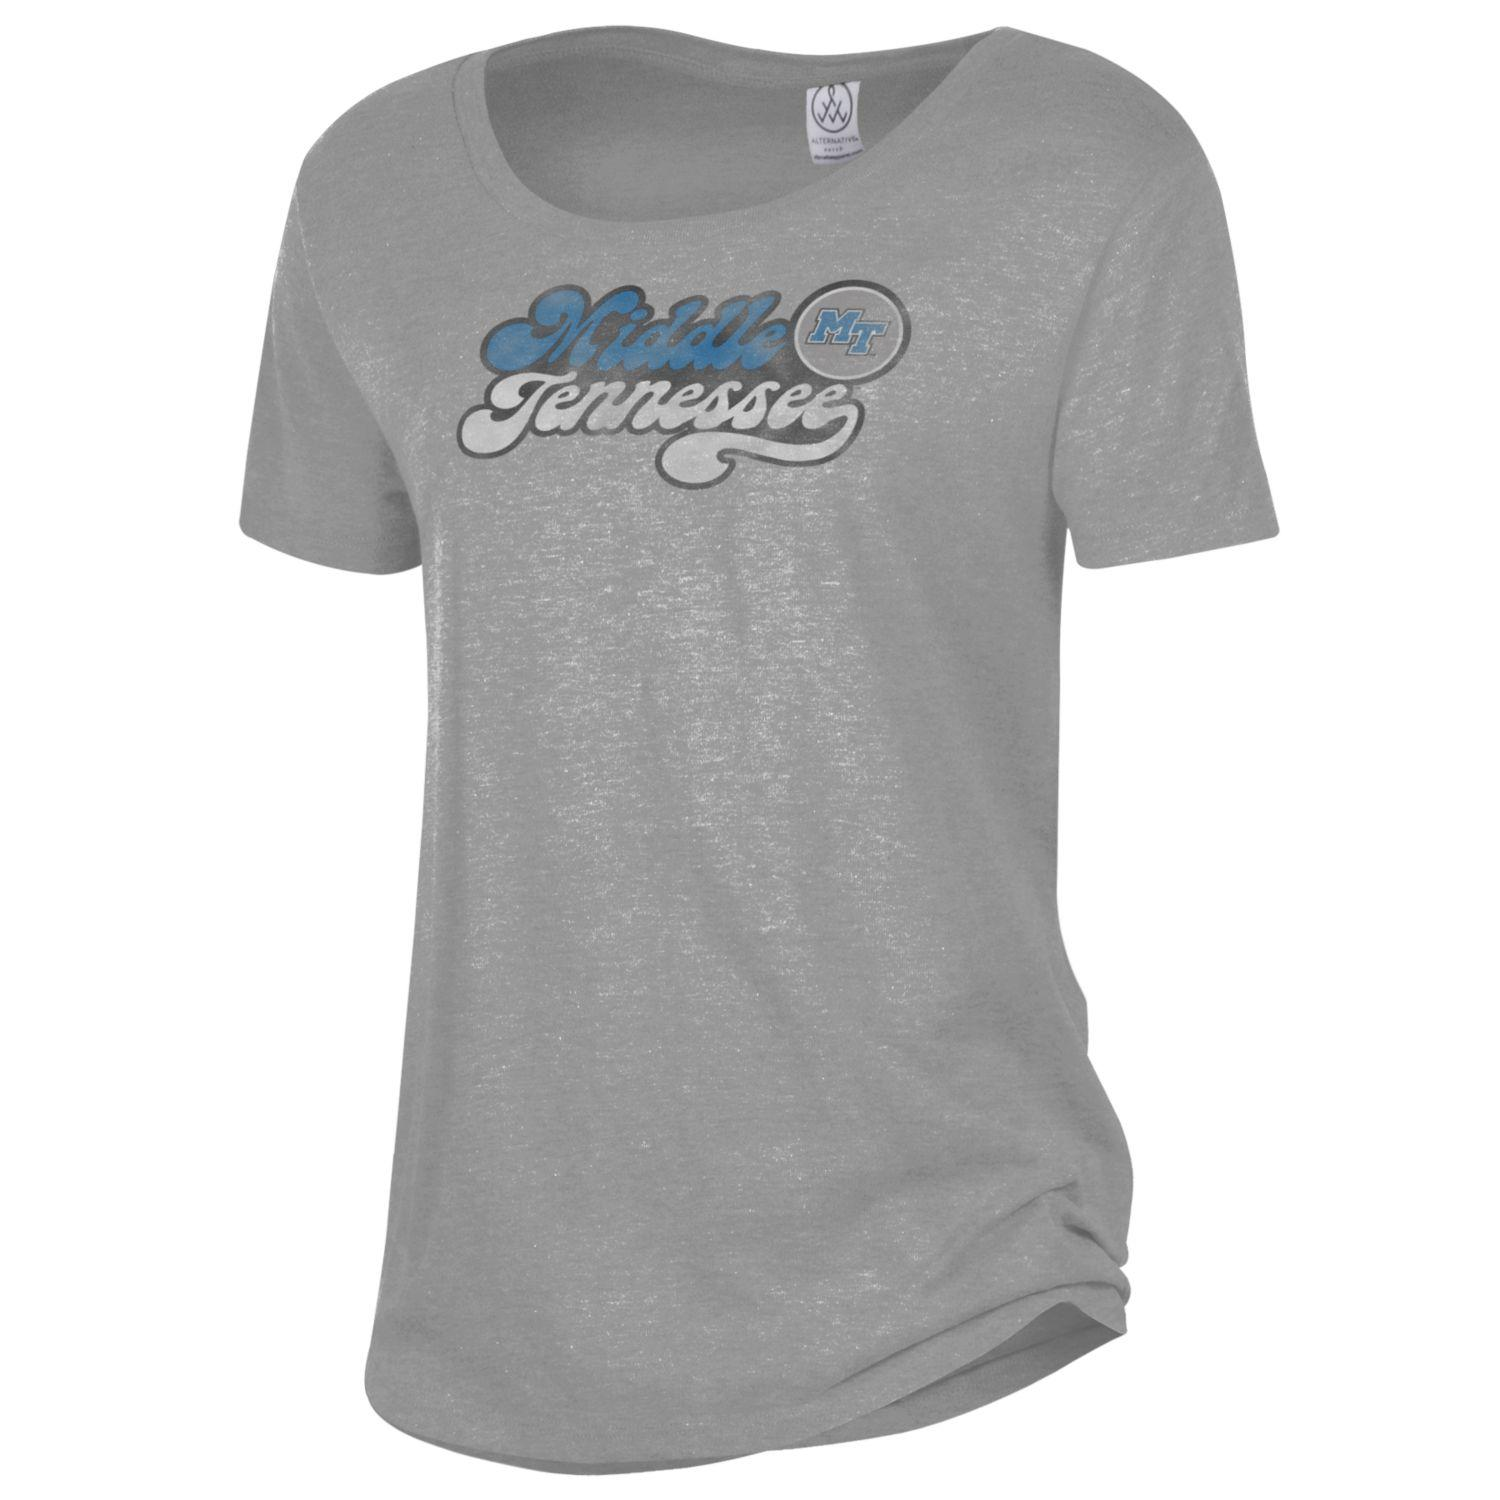 Middle Tennessee Backstage Women's Tshirt